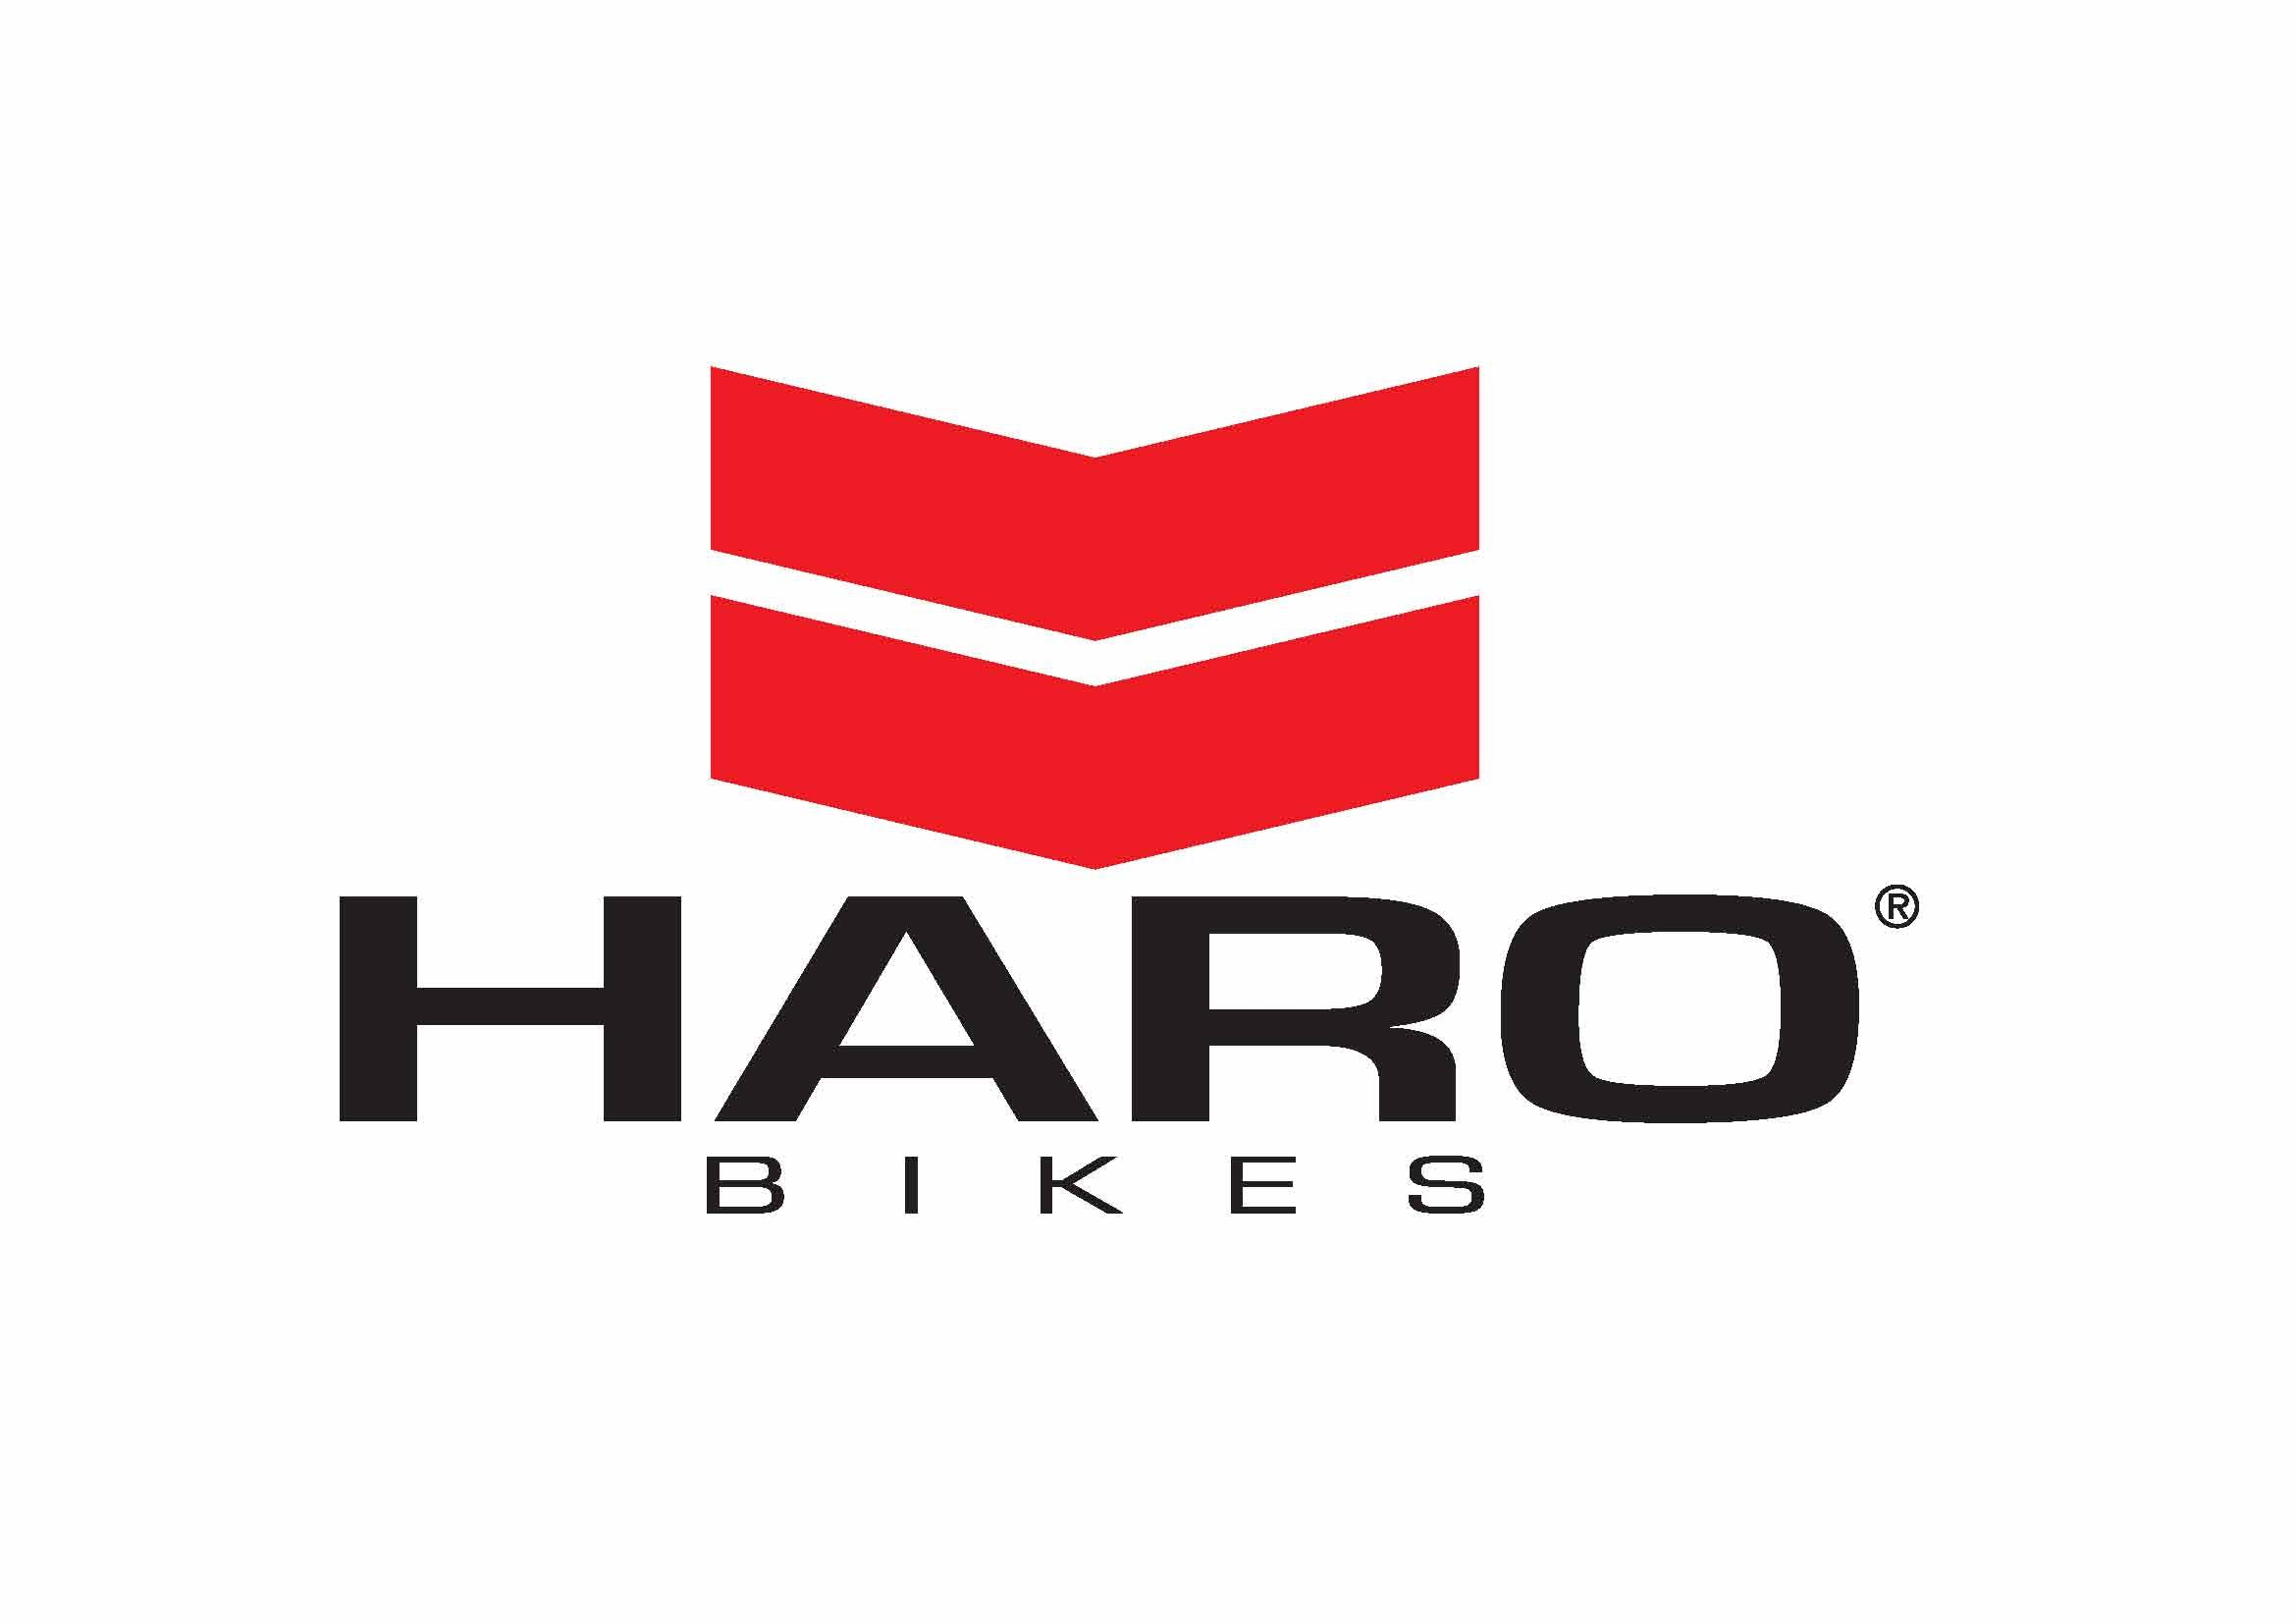 HARO bicycle bike wallpaper | 2339x1654 | 460157 | WallpaperUP